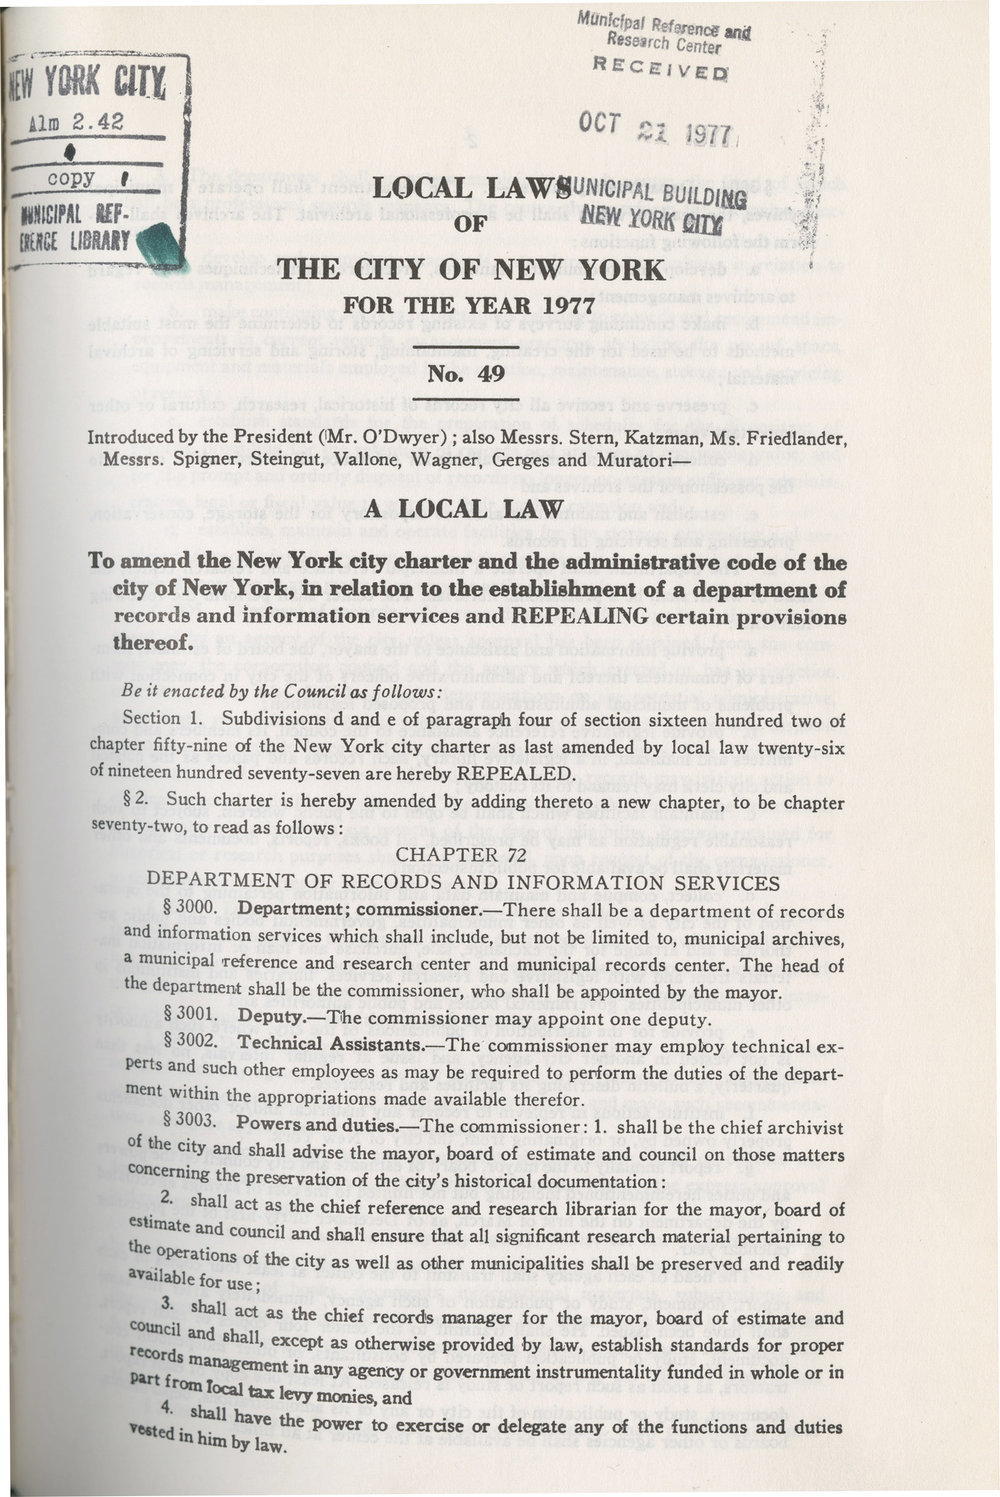 Local law 49 established DORIS in 1977. The first page is pictured. NYC Municipal Library.